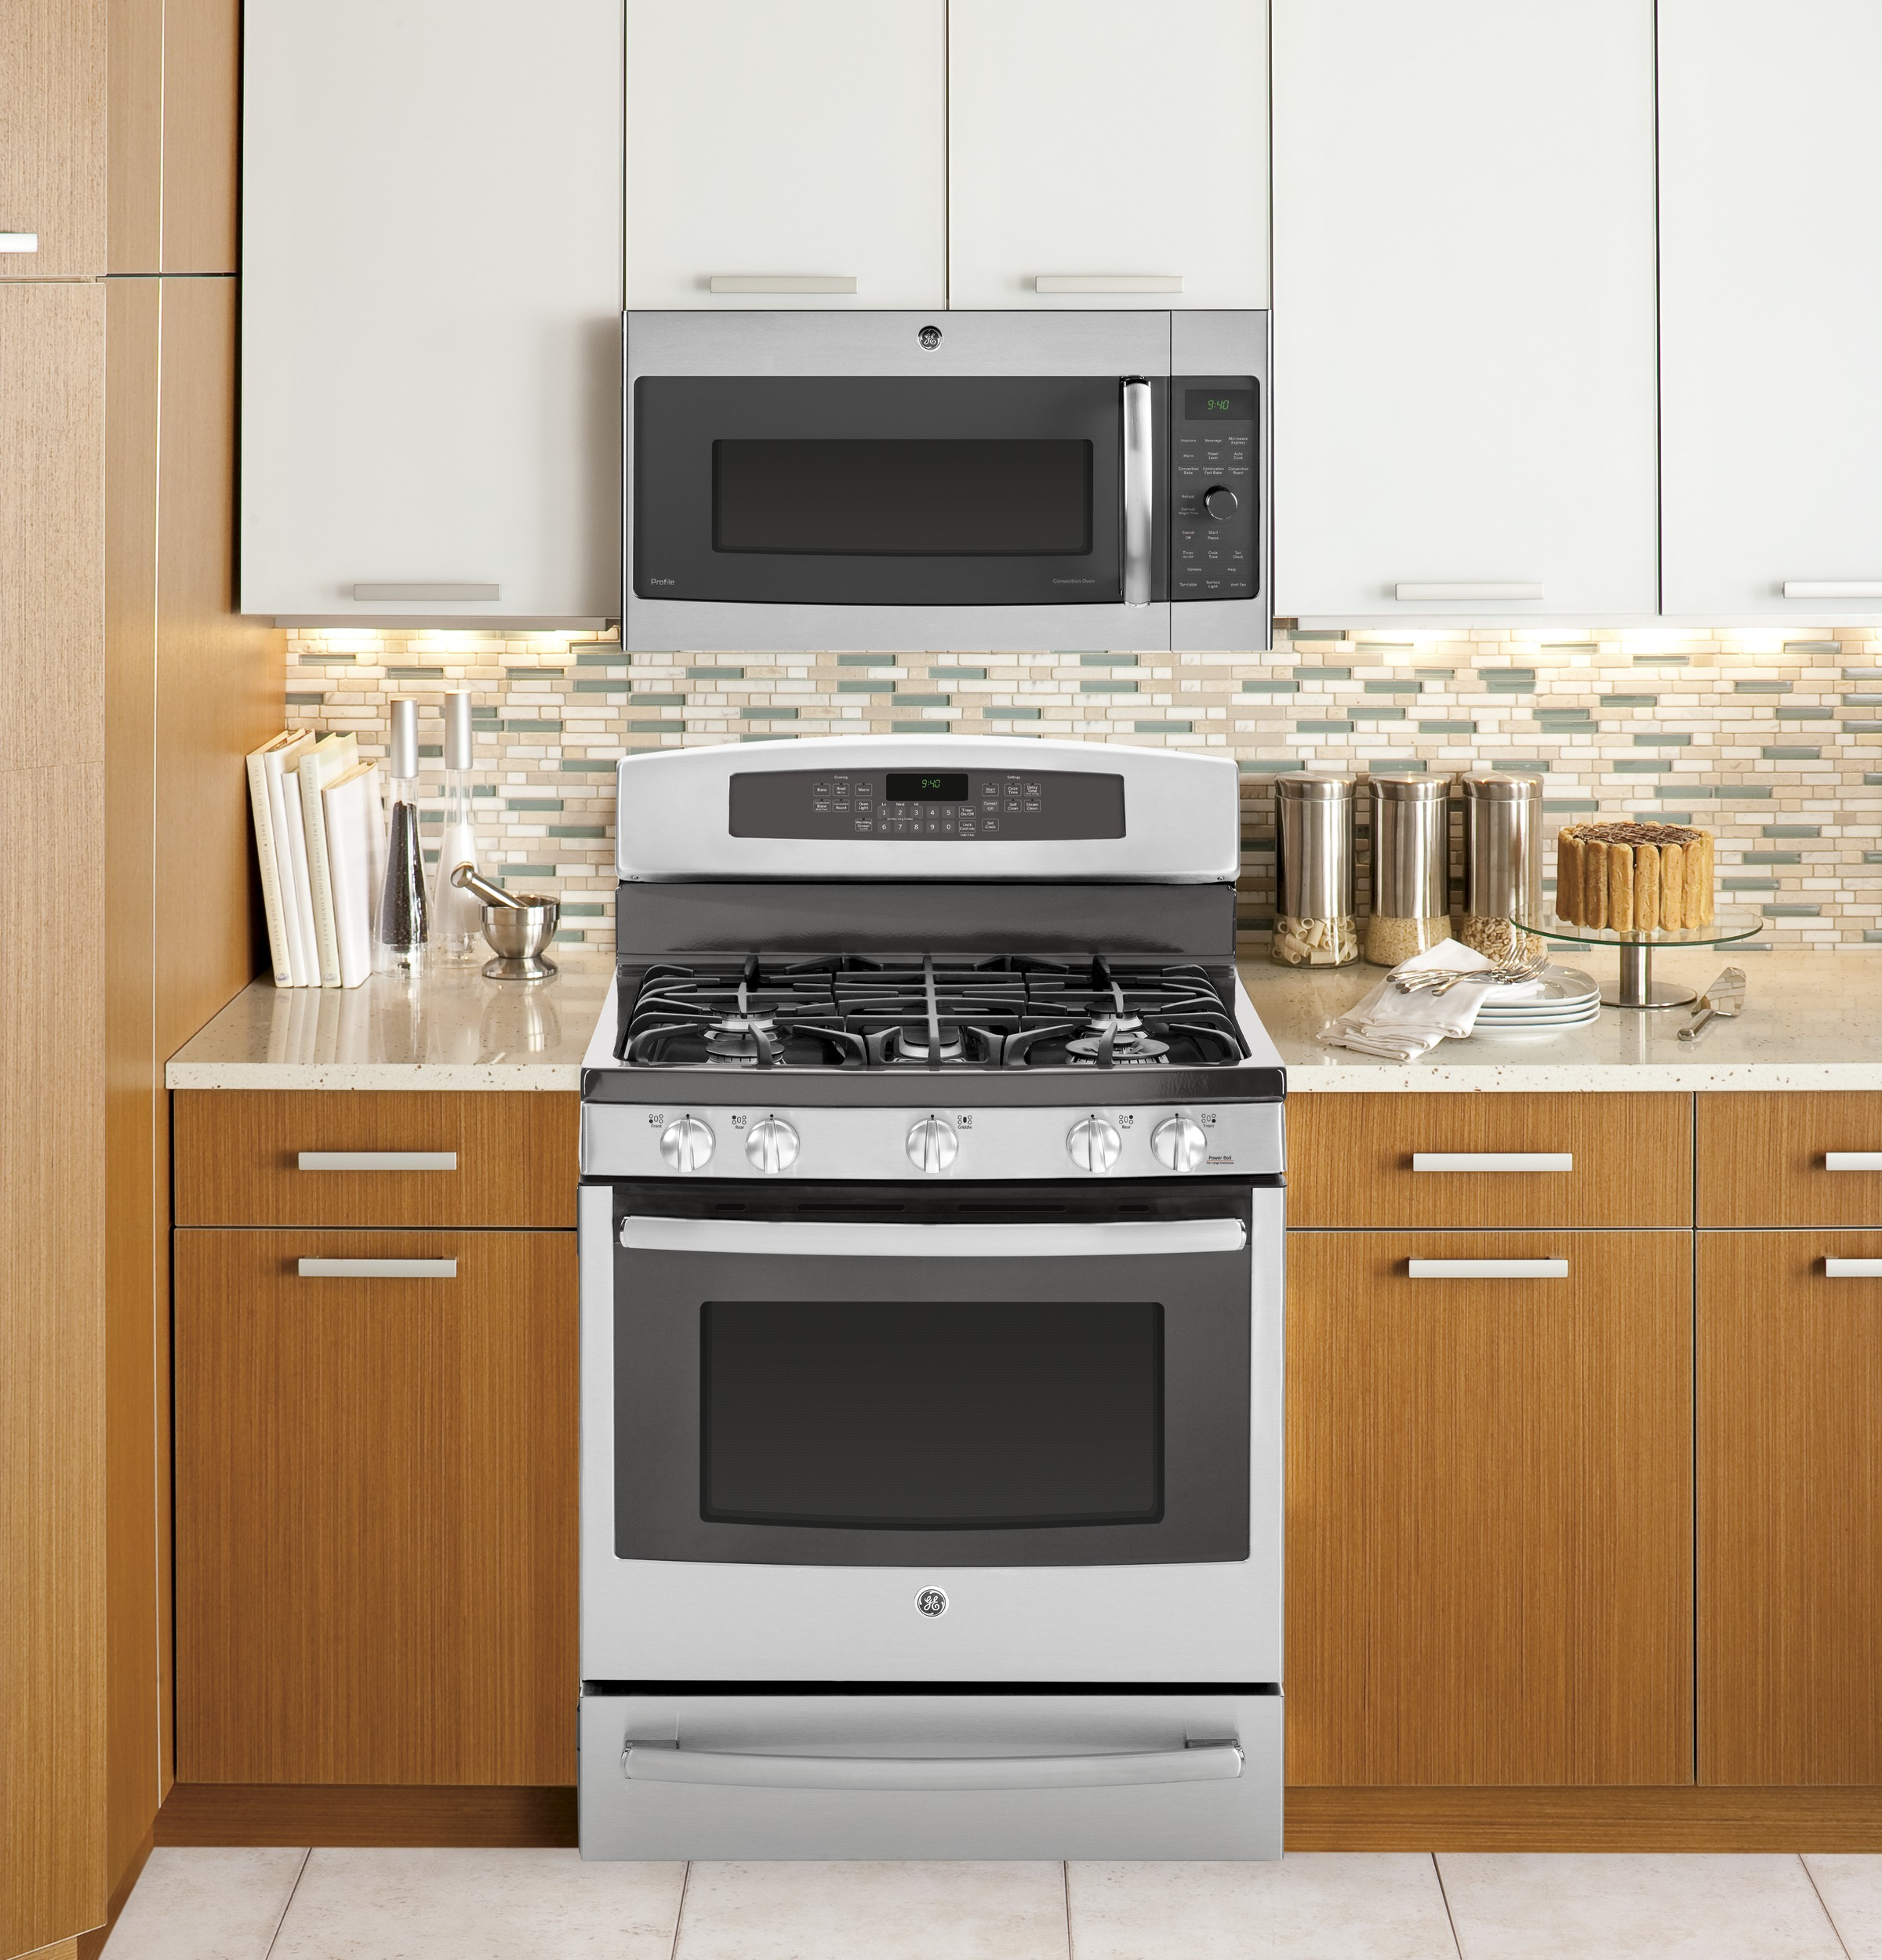 Over The Range Microwave Ovens: GE Profile™ Series 1.7 Cu. Ft. Convection Over-the-Range